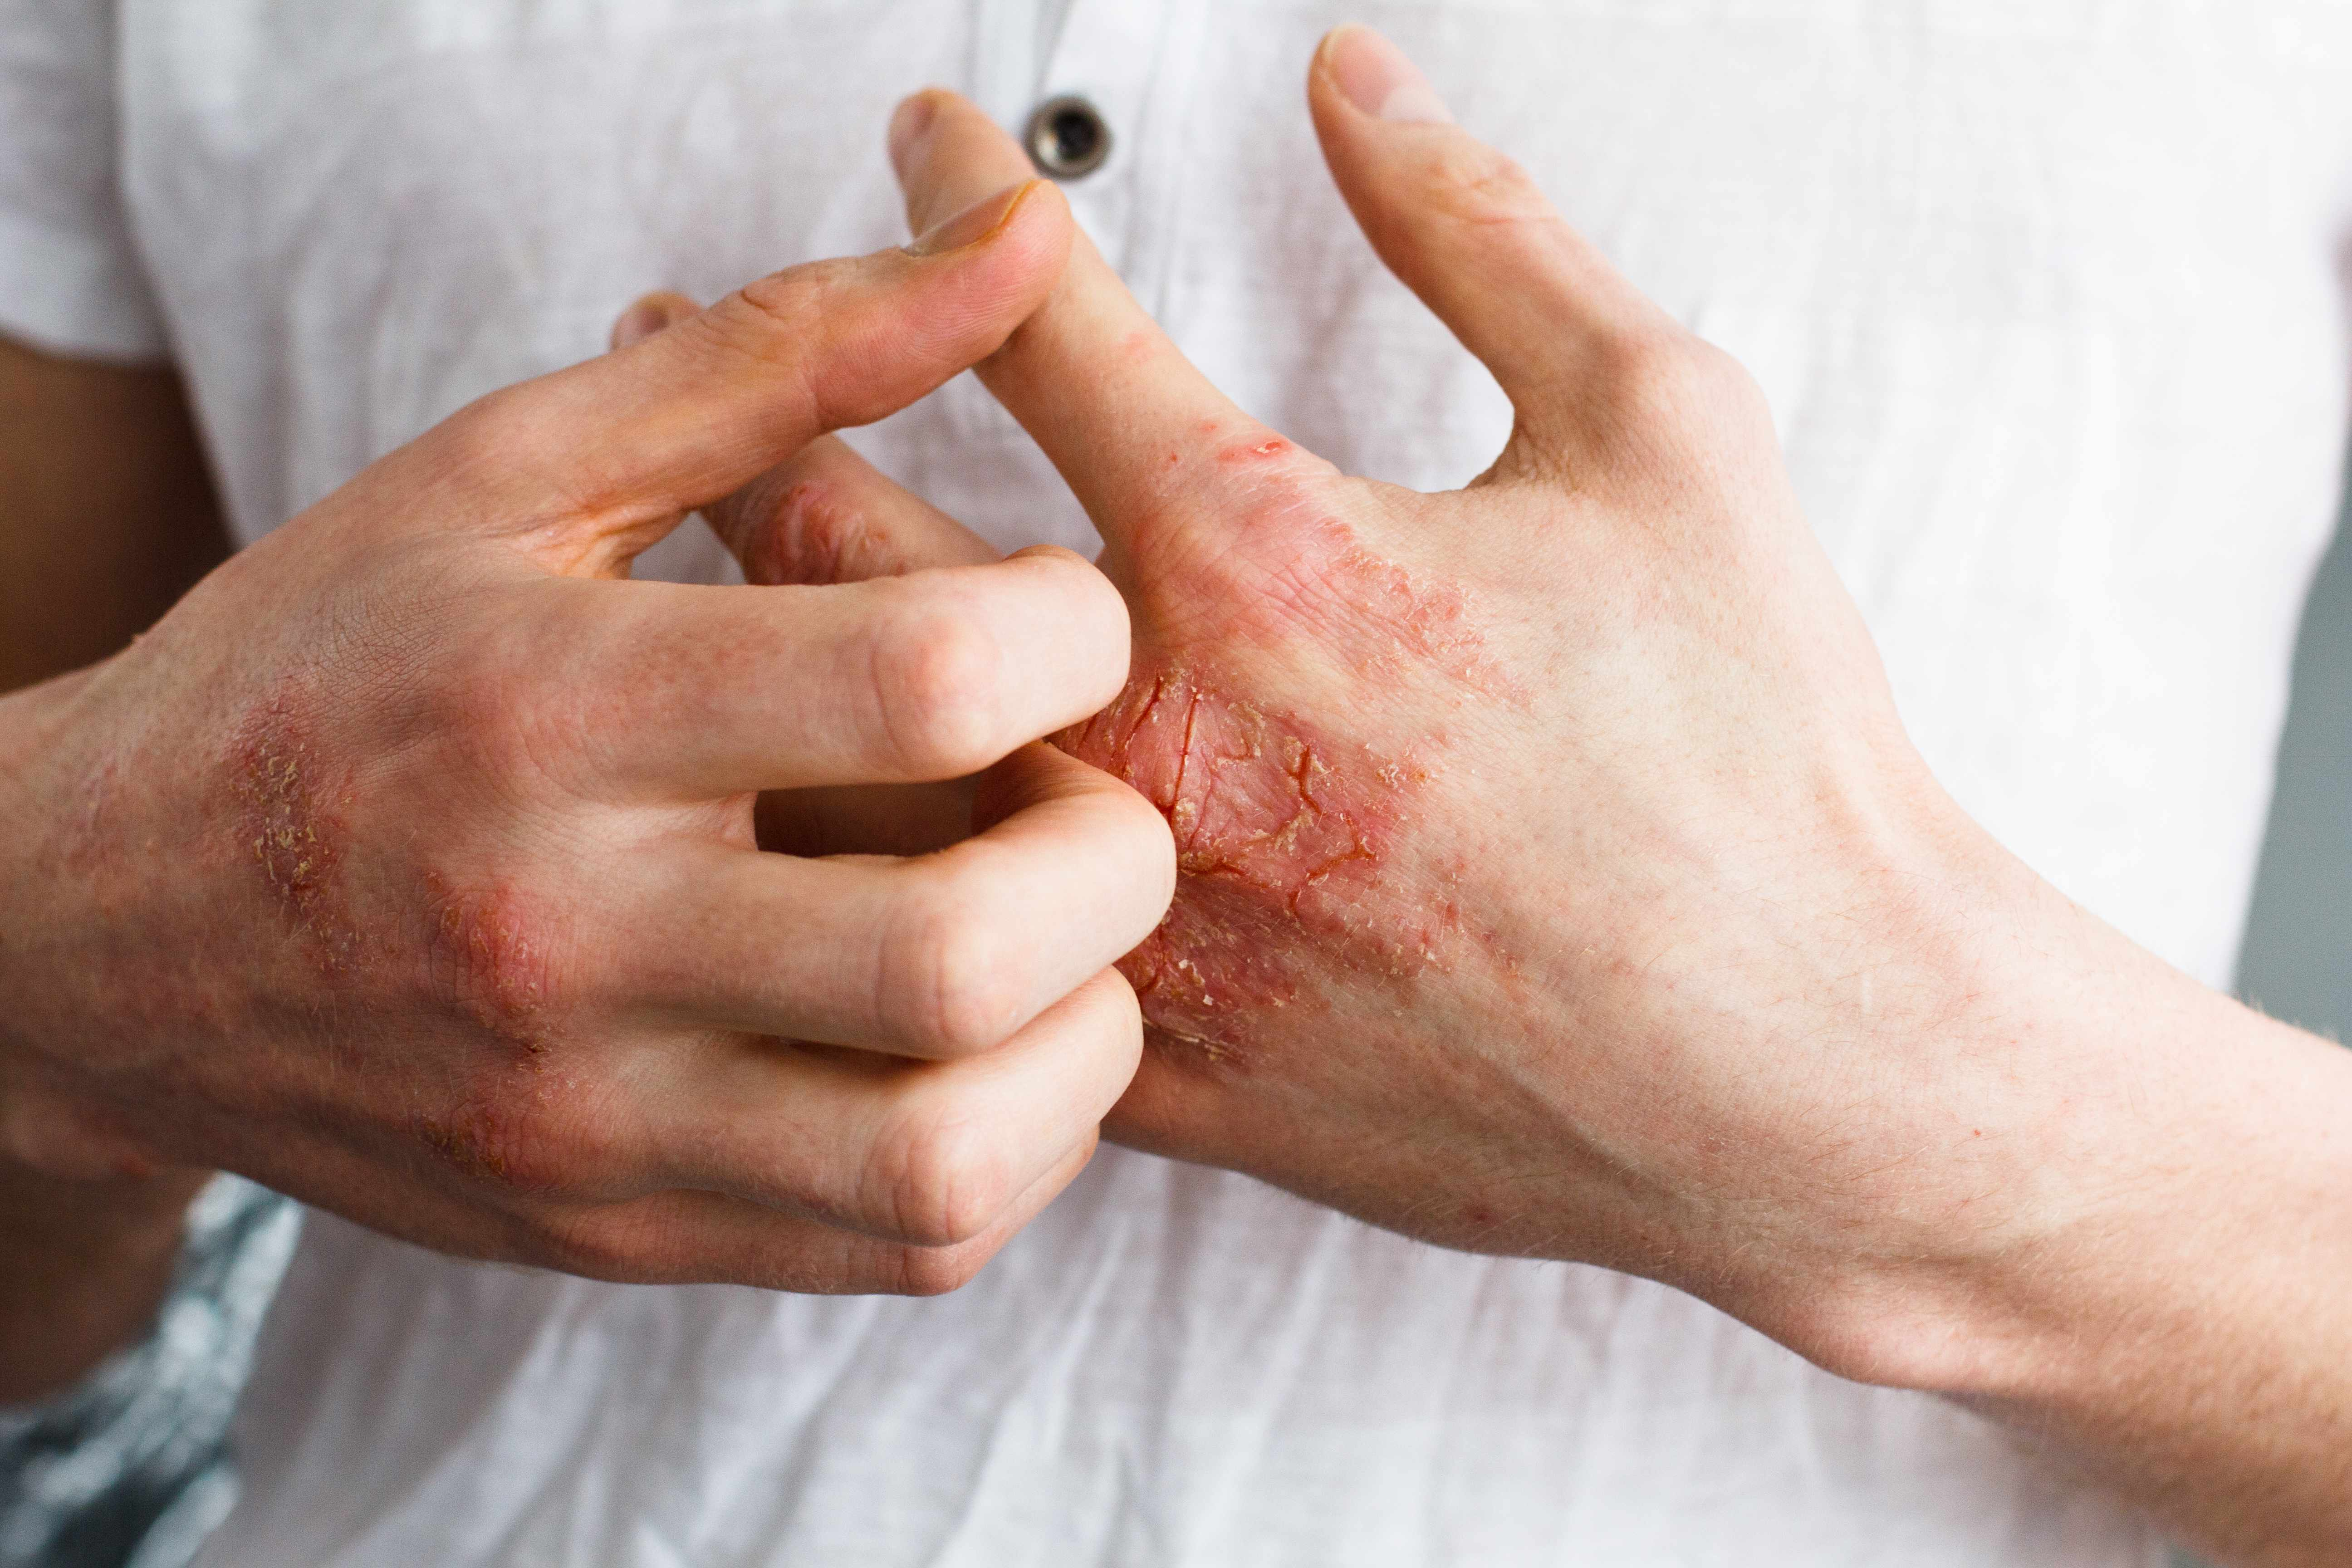 Home Remedies: The itchy irritation of eczema – Mayo Clinic